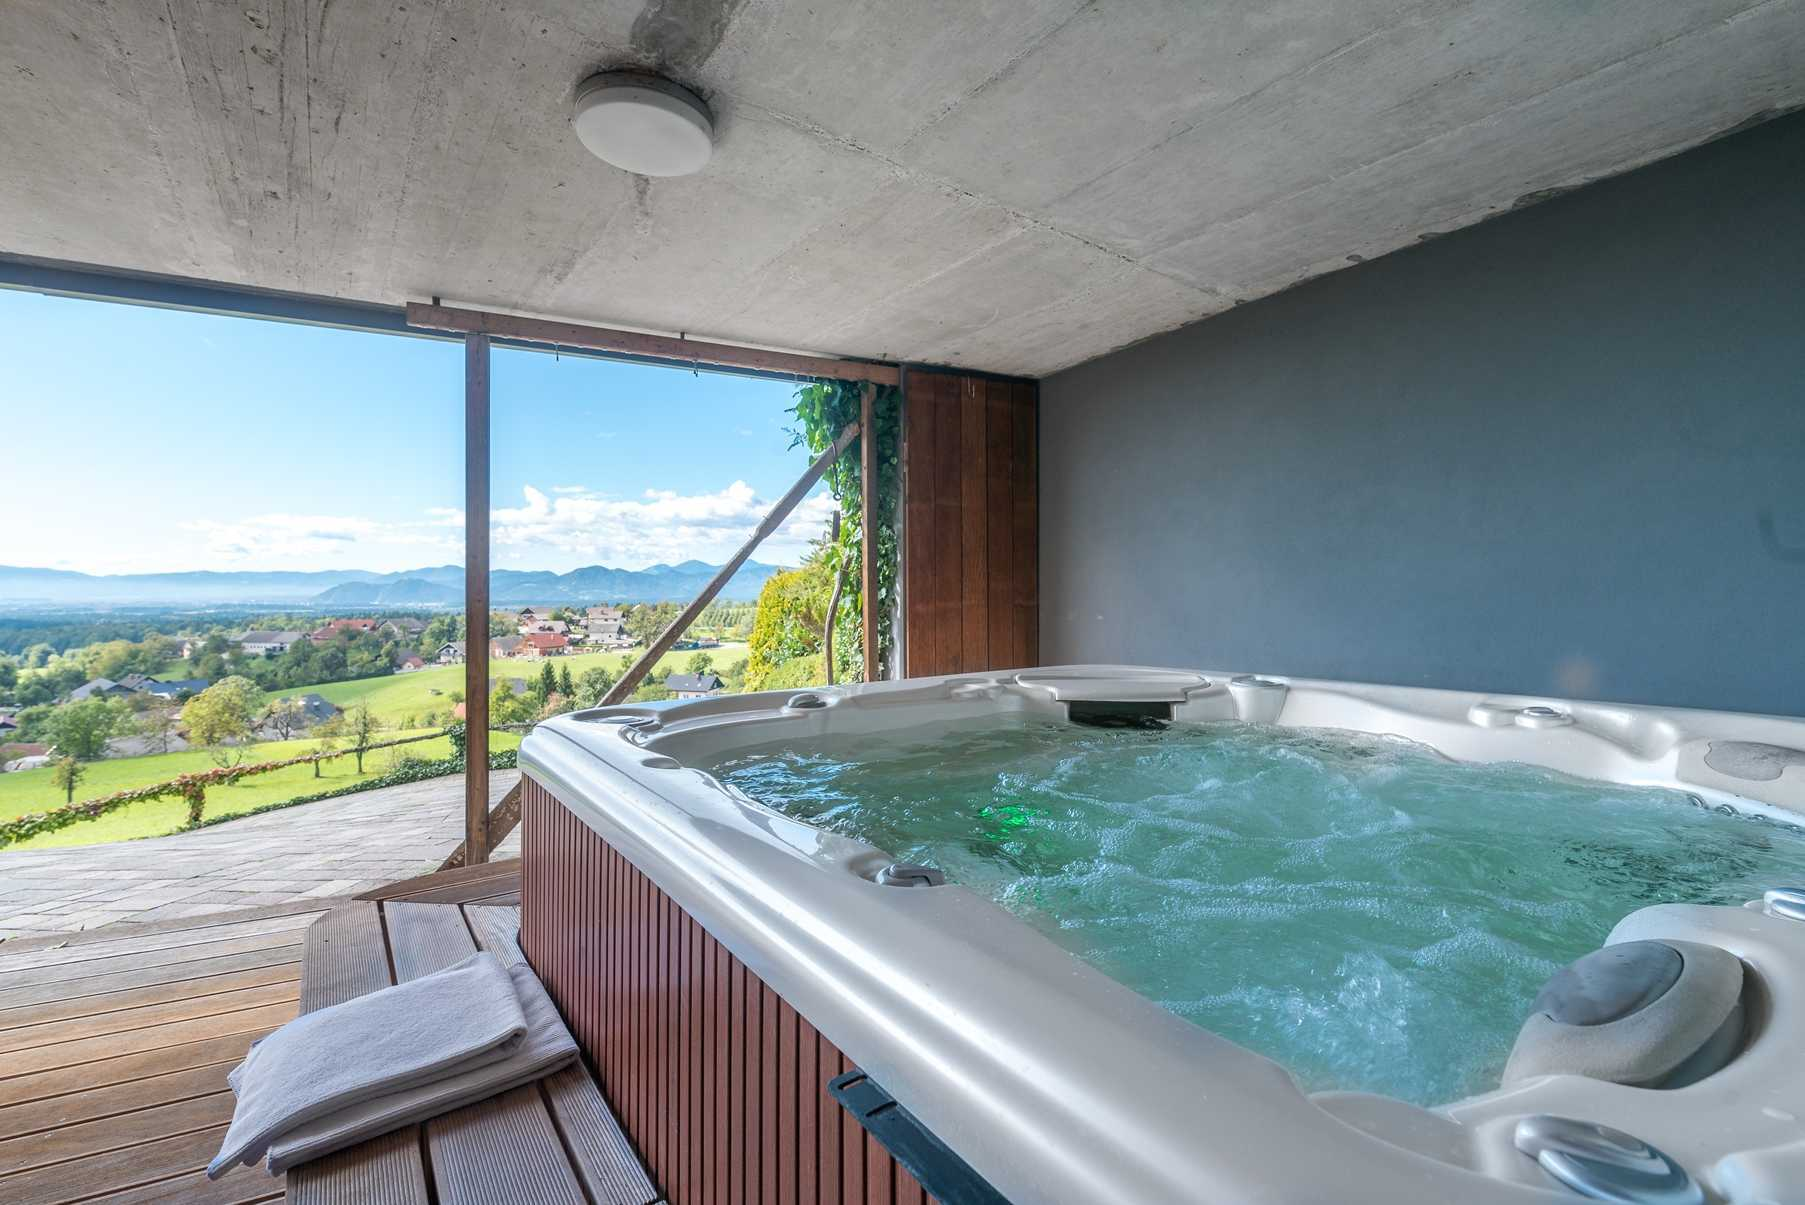 The jacuzzi has a fantastic view of the countryside.